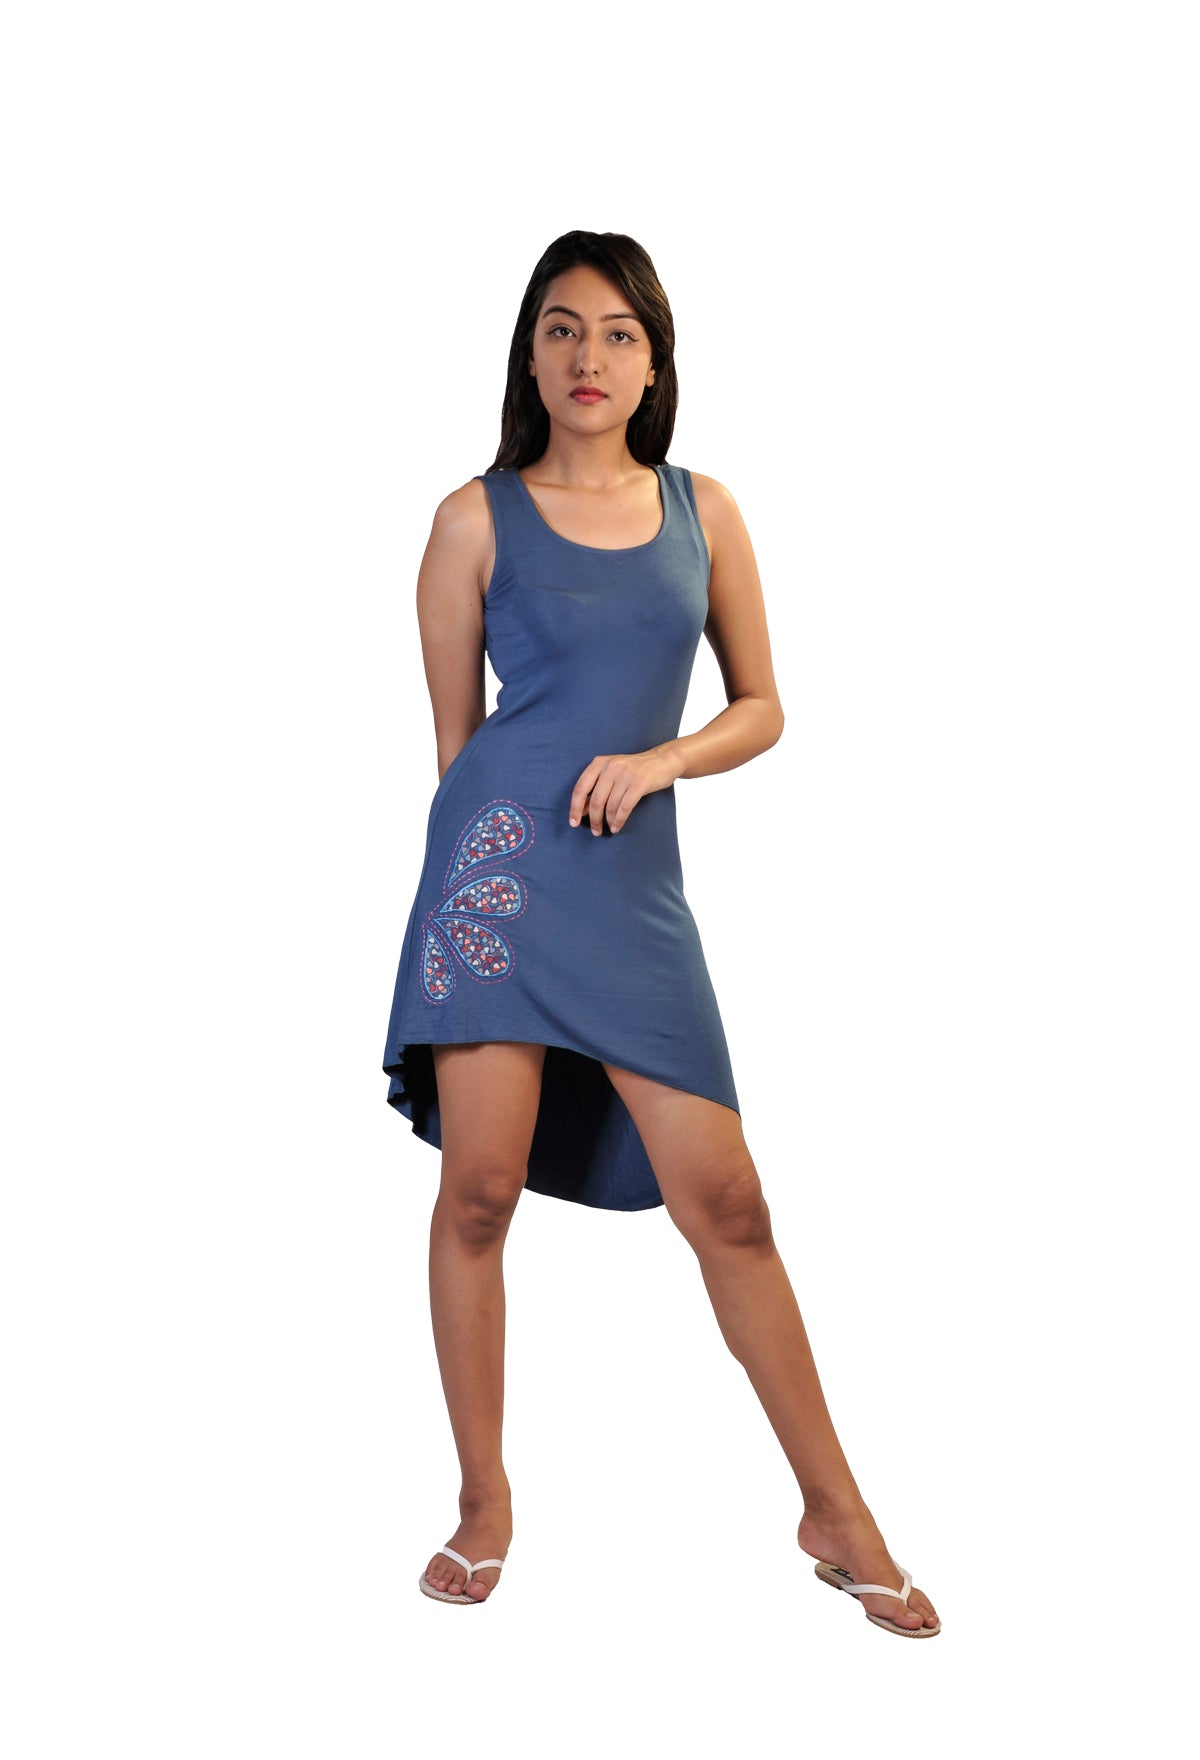 Blue Sleeveless Dress With Colorful Print In Back- NF-DR01 - Craze Trade Limited